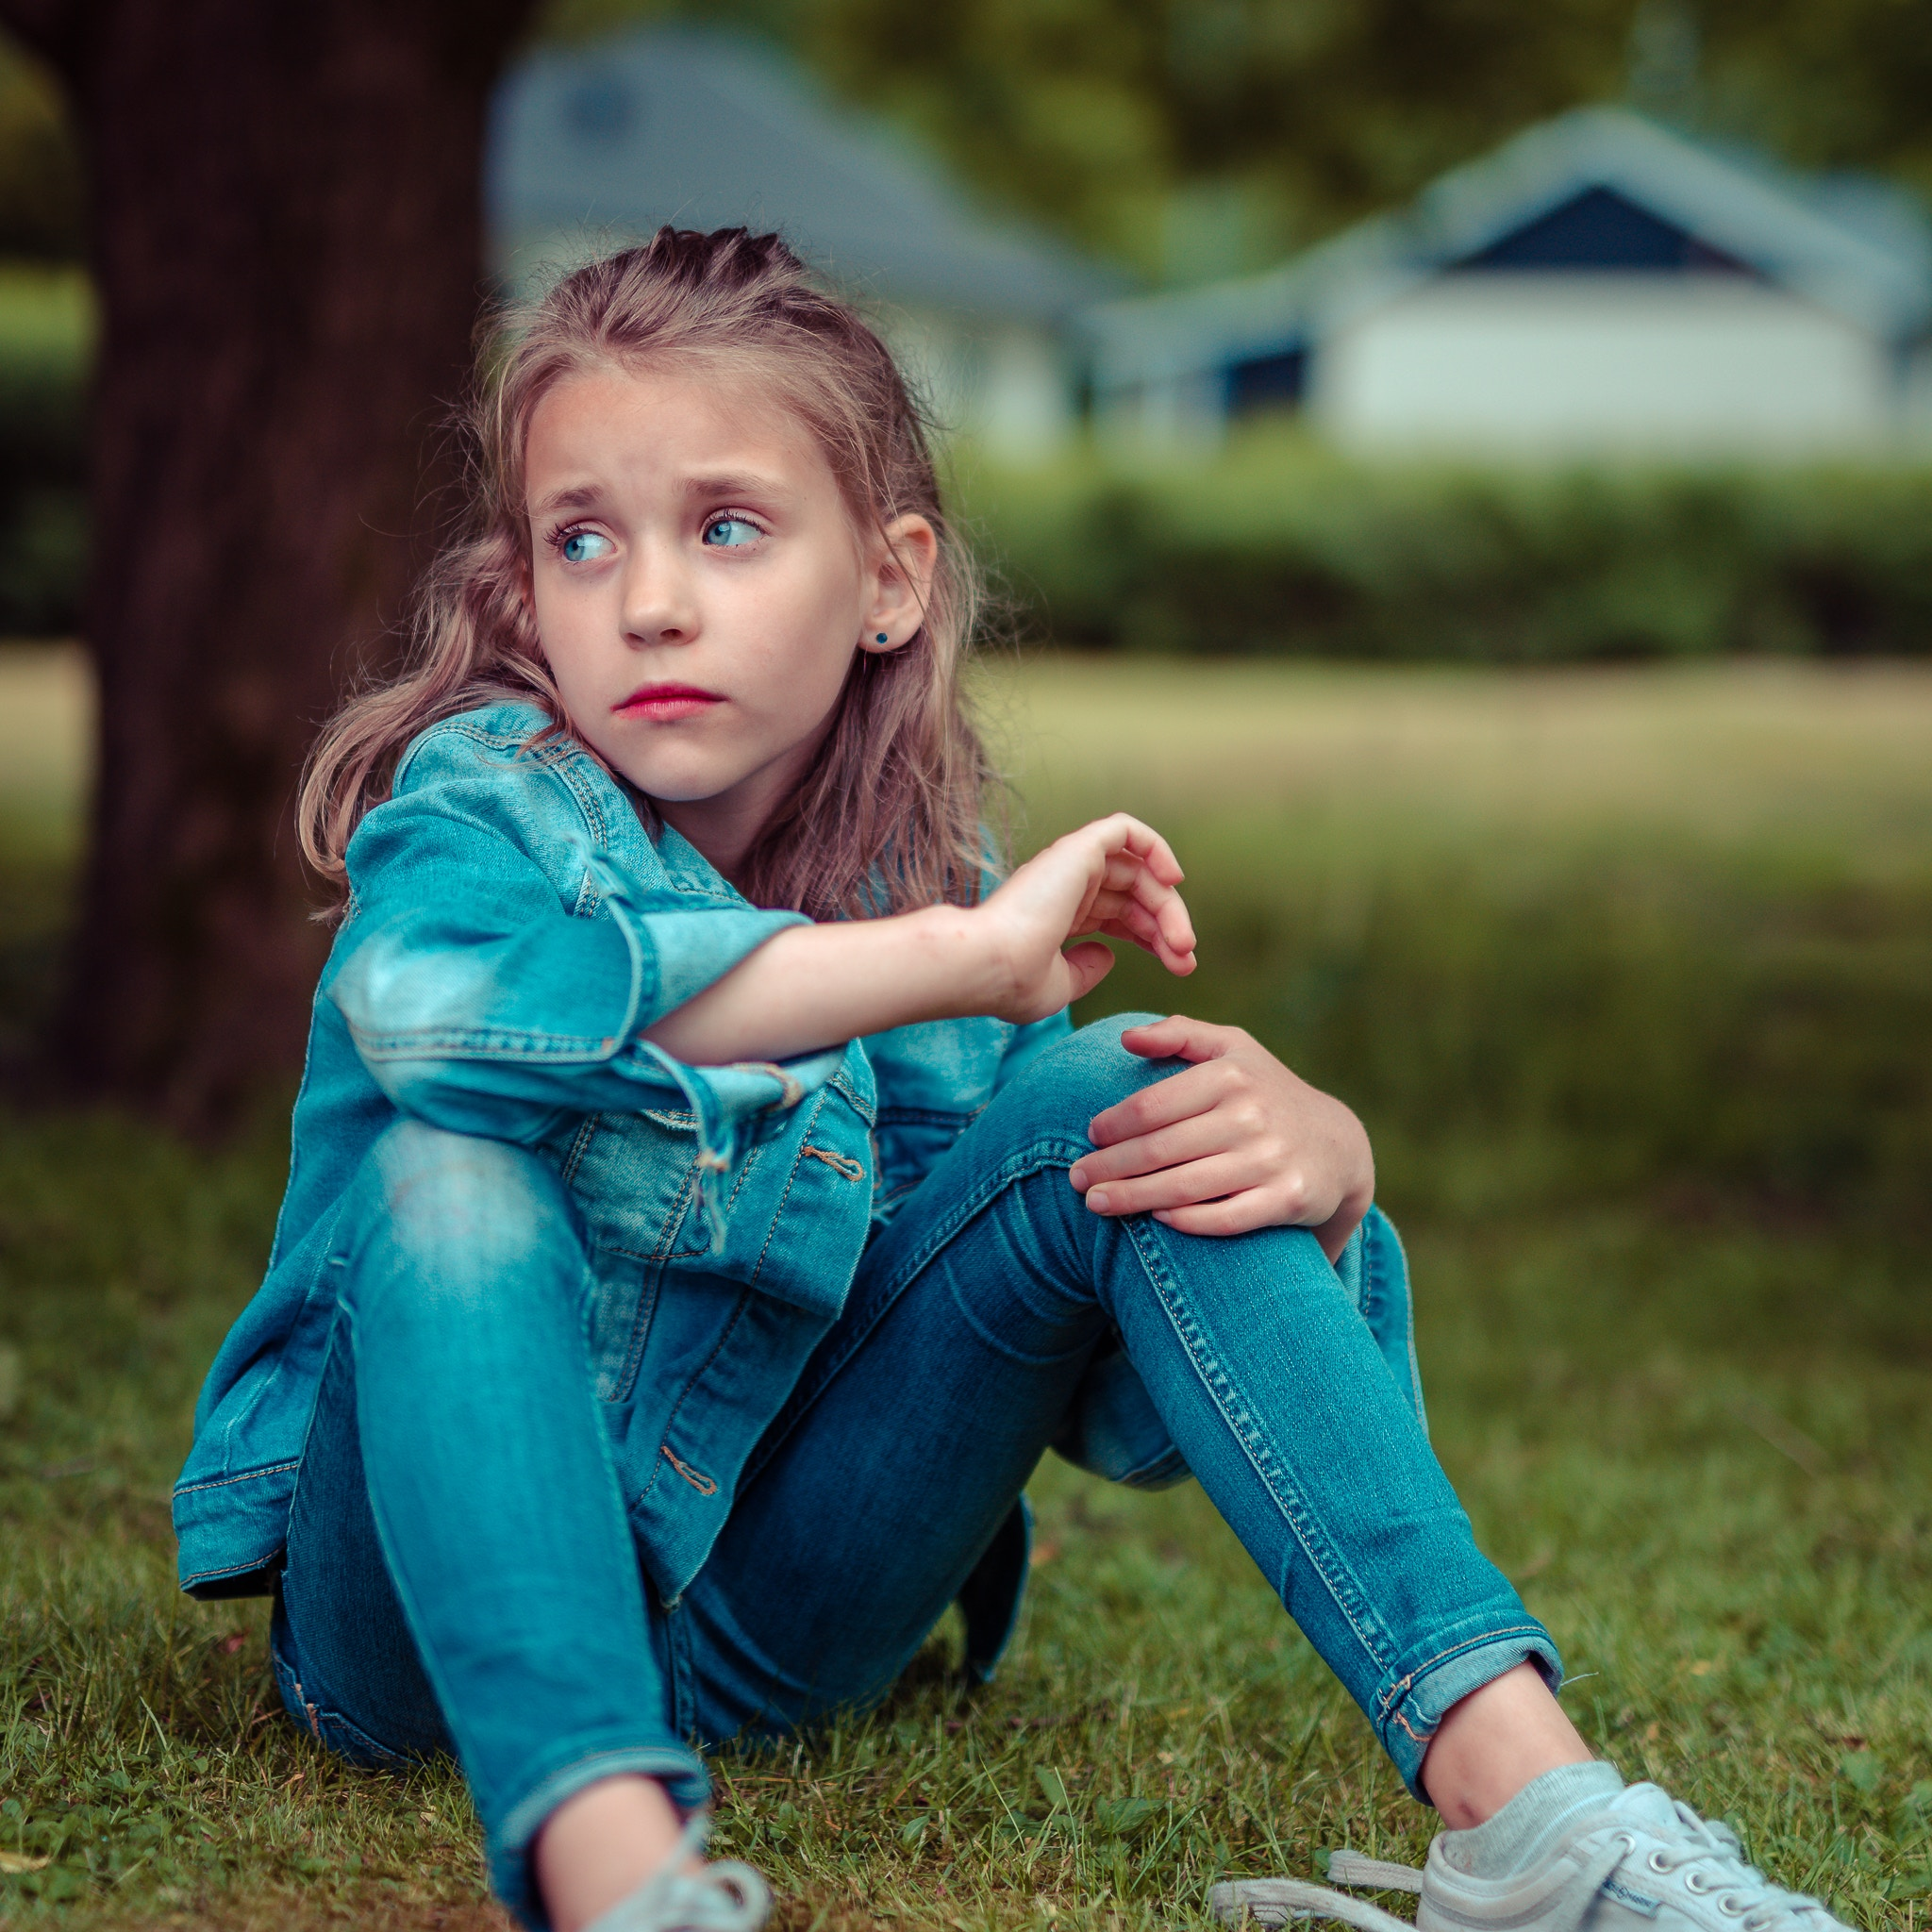 Kentucky's Children Have Higher Percentage of Adverse Childhood Experiences